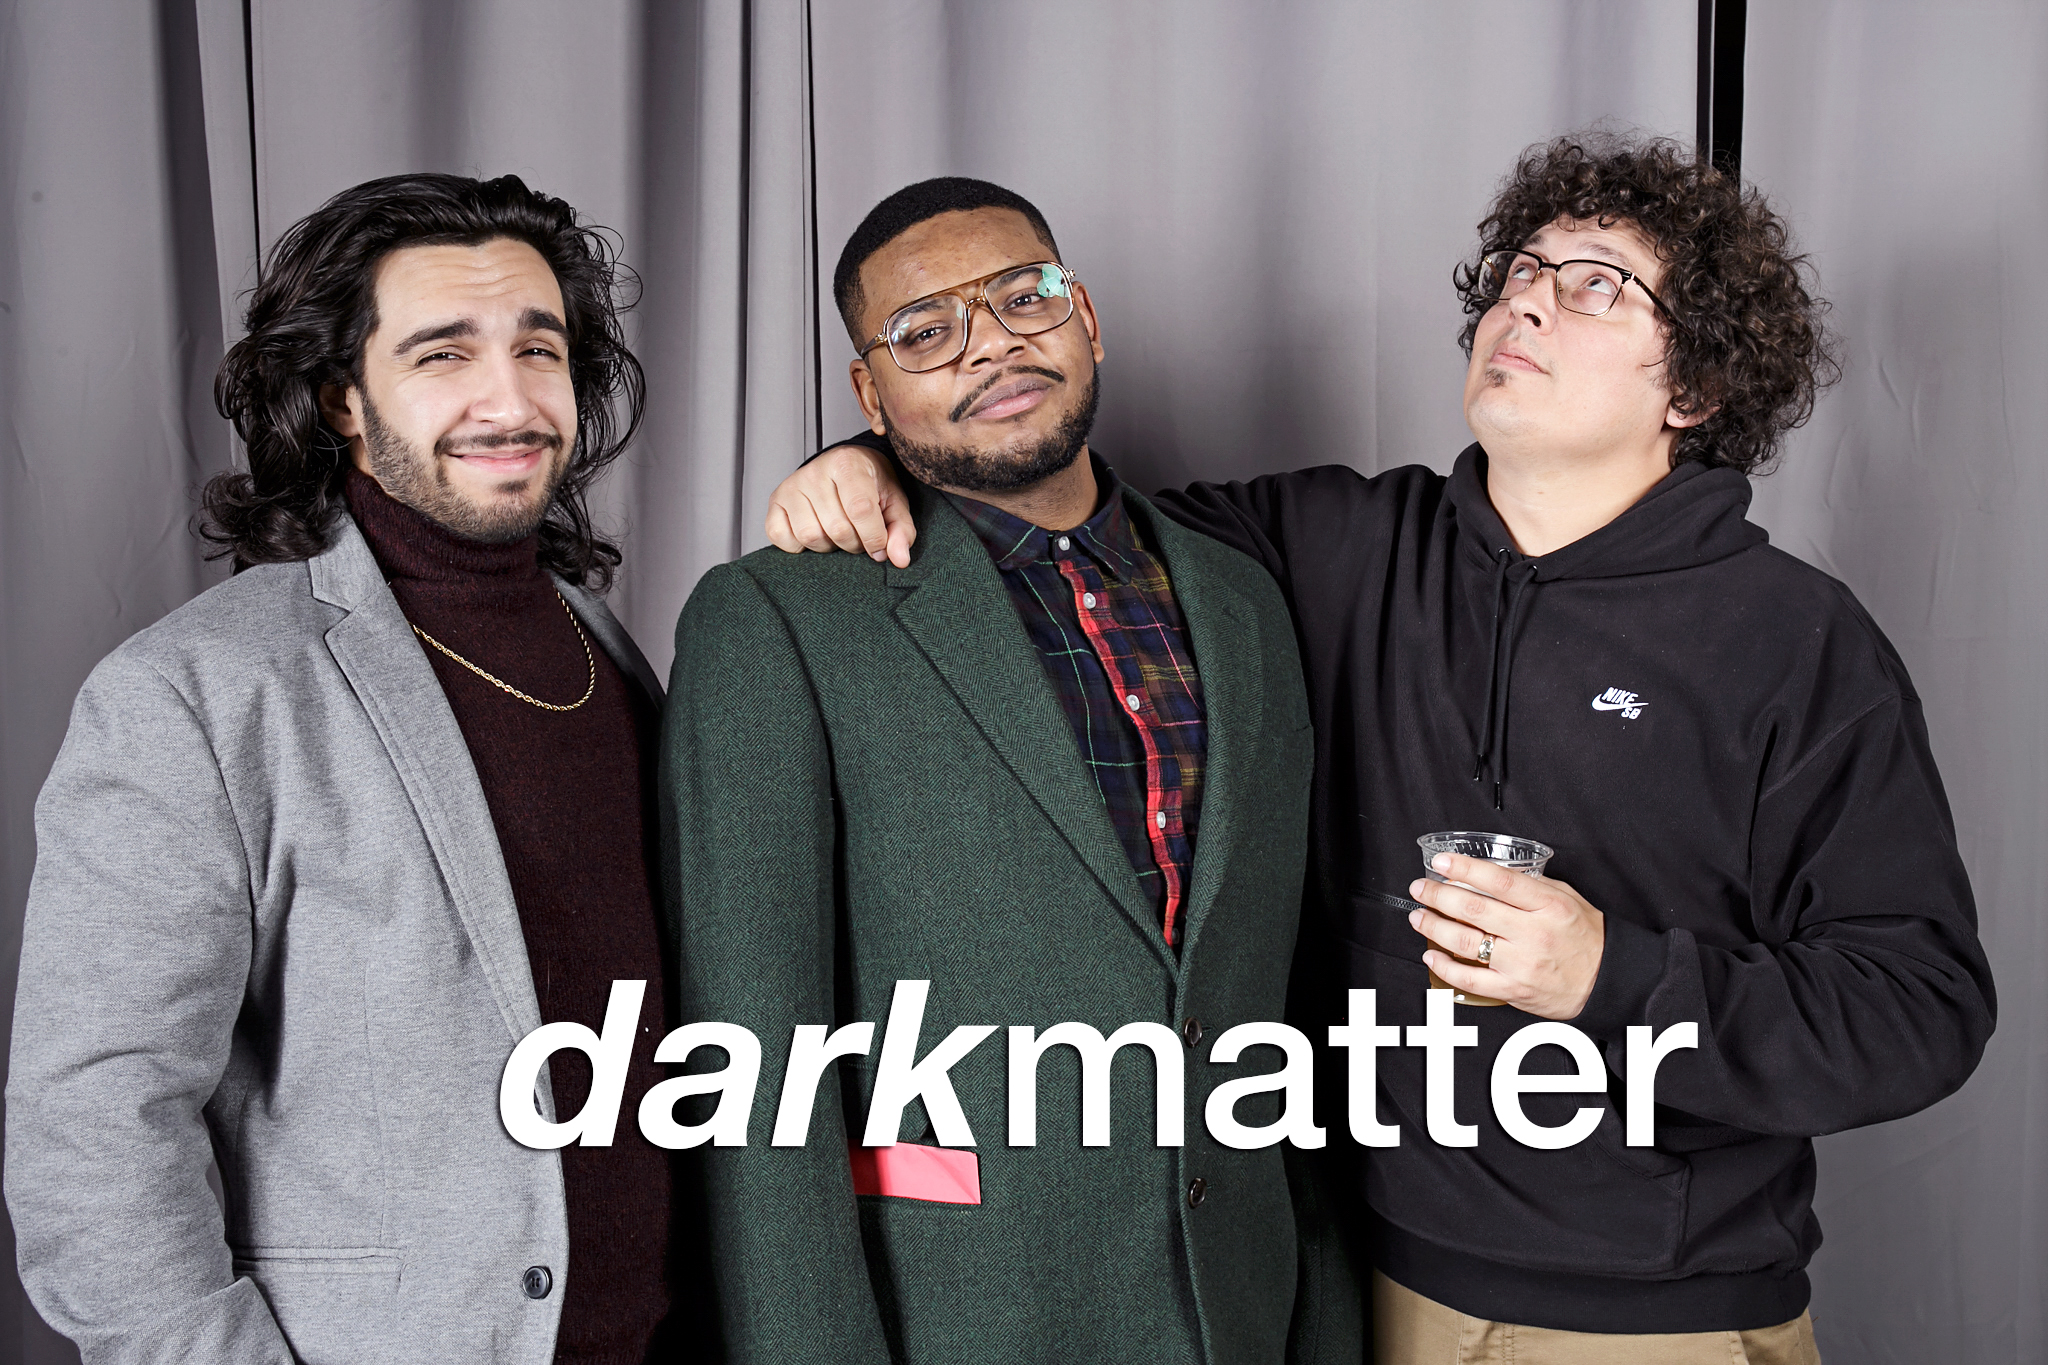 glitterguts portrait booth photos from dark matter chicago, january 2020